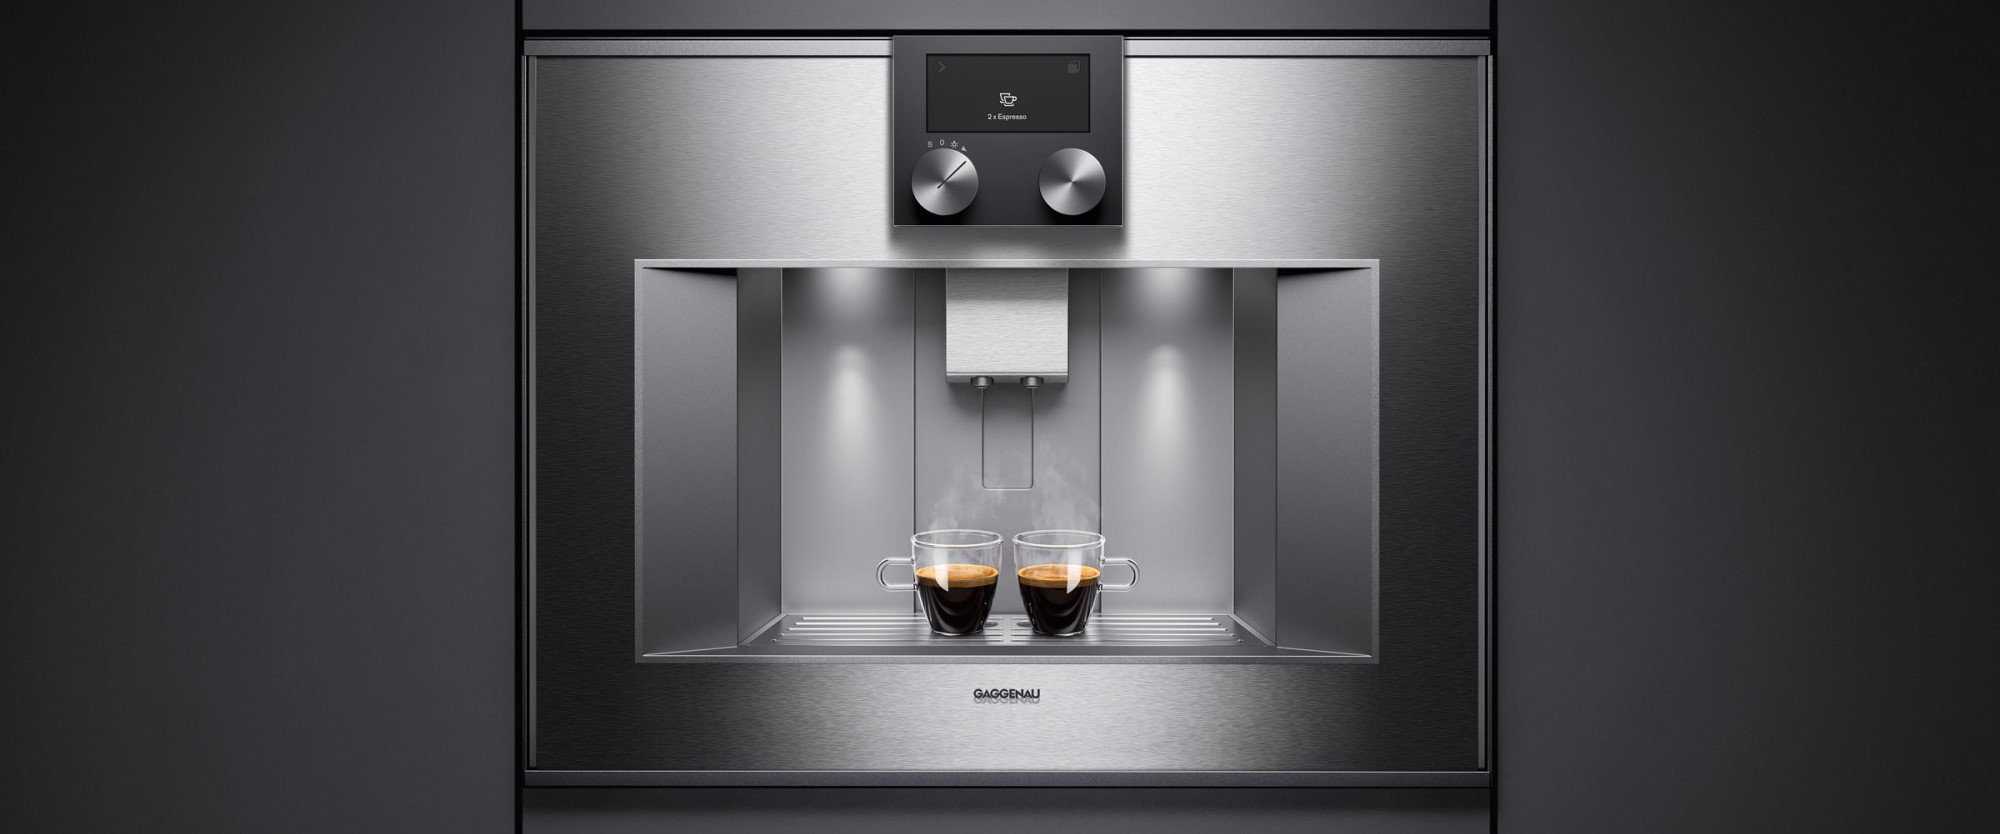 gaggenau-coffee-machine